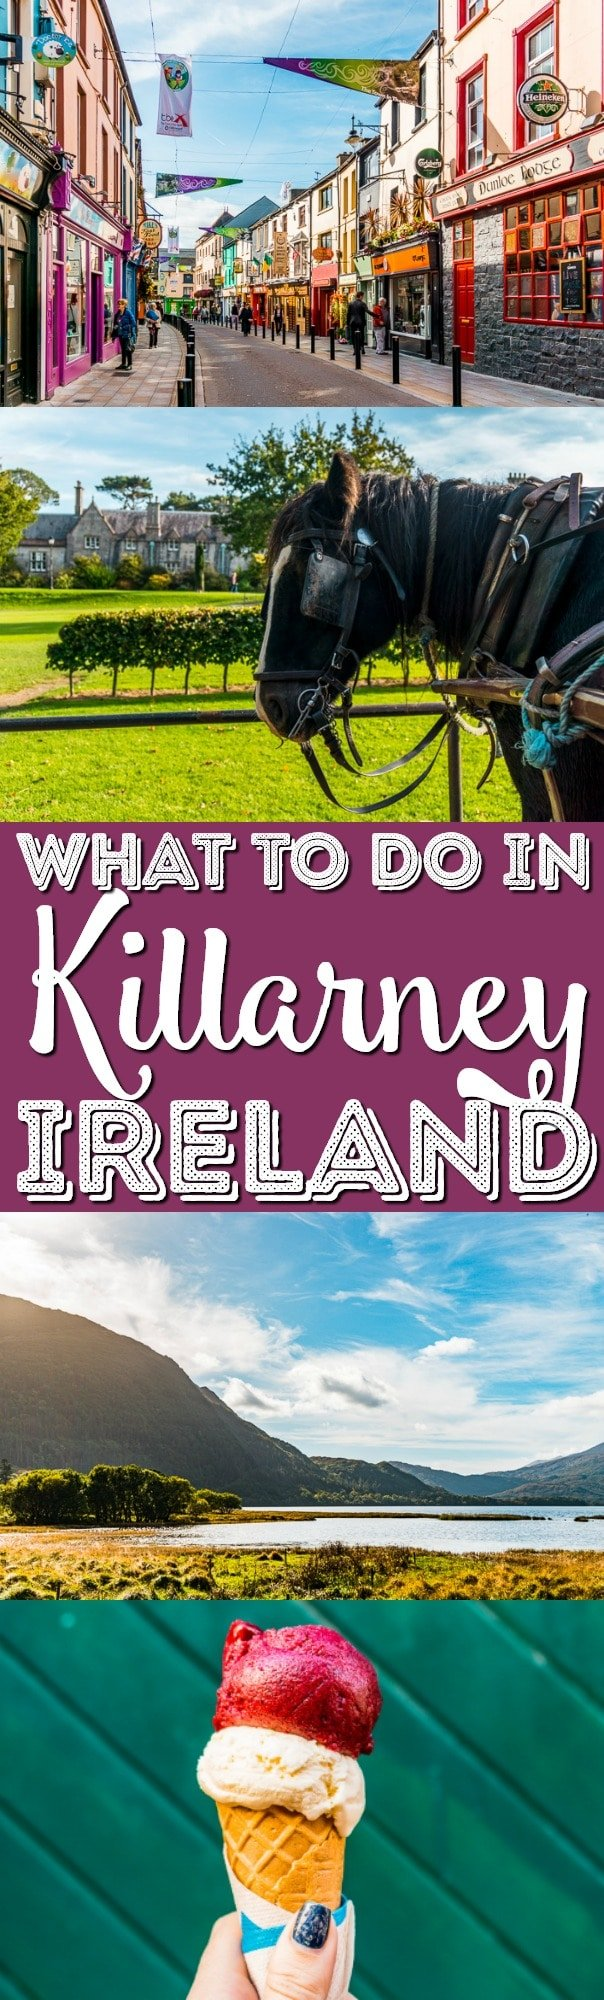 Are you taking a trip to Ireland and not sure where to go? Consider Killarney Ireland for your European vacation in the Ring of Kerry! via @sugarandsoulco